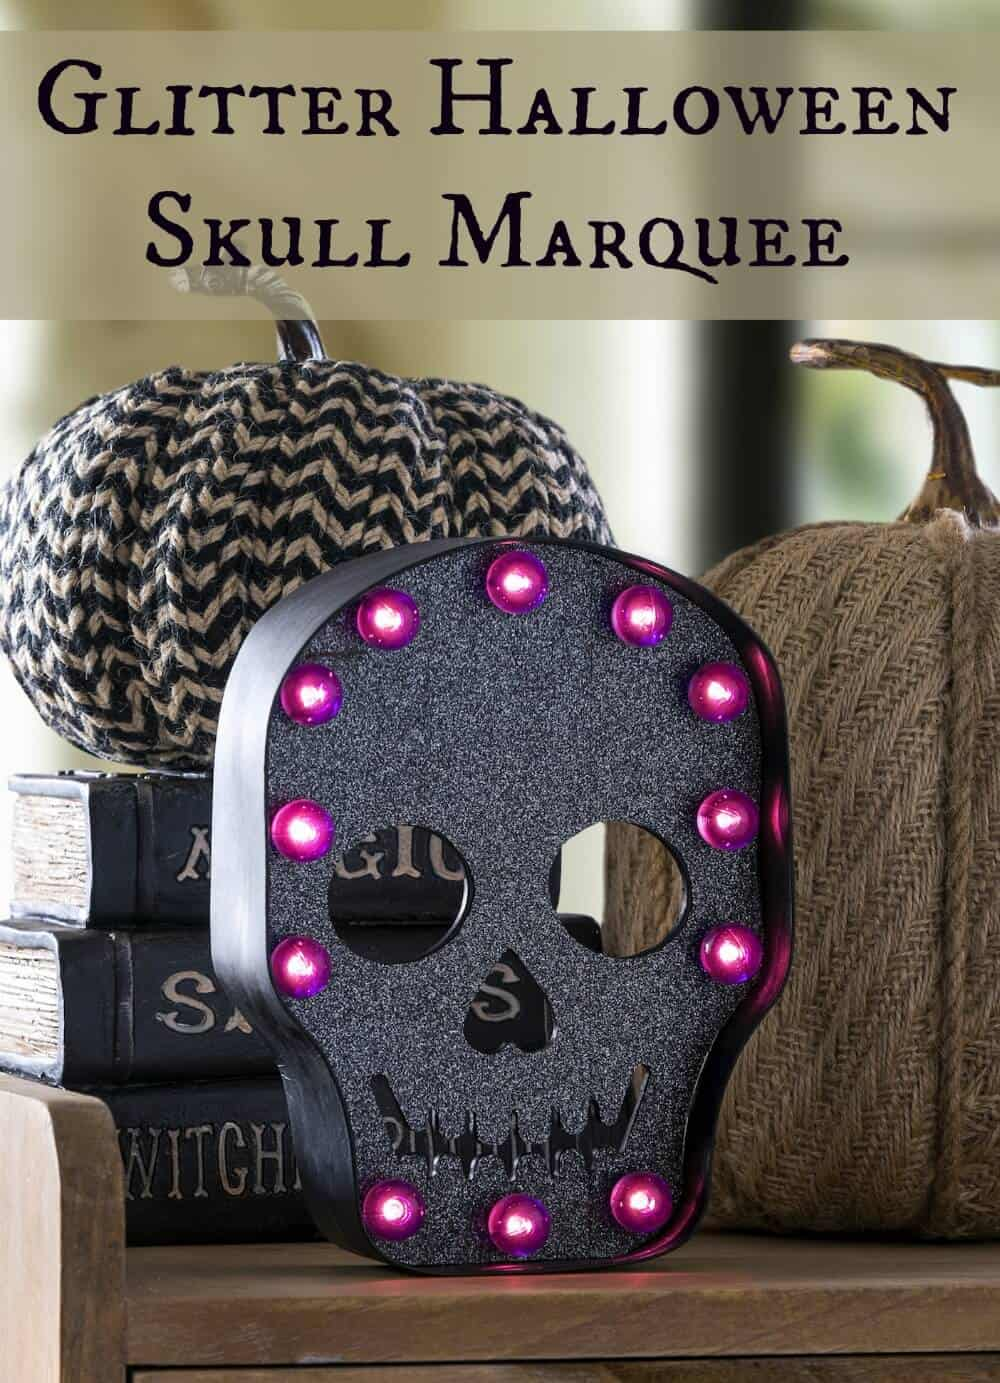 Use black Glitter Duck Tape to decorate this fun skull marquee for Halloween! Perfect for mantel decor or a Halloween party decoration. So easy to make!